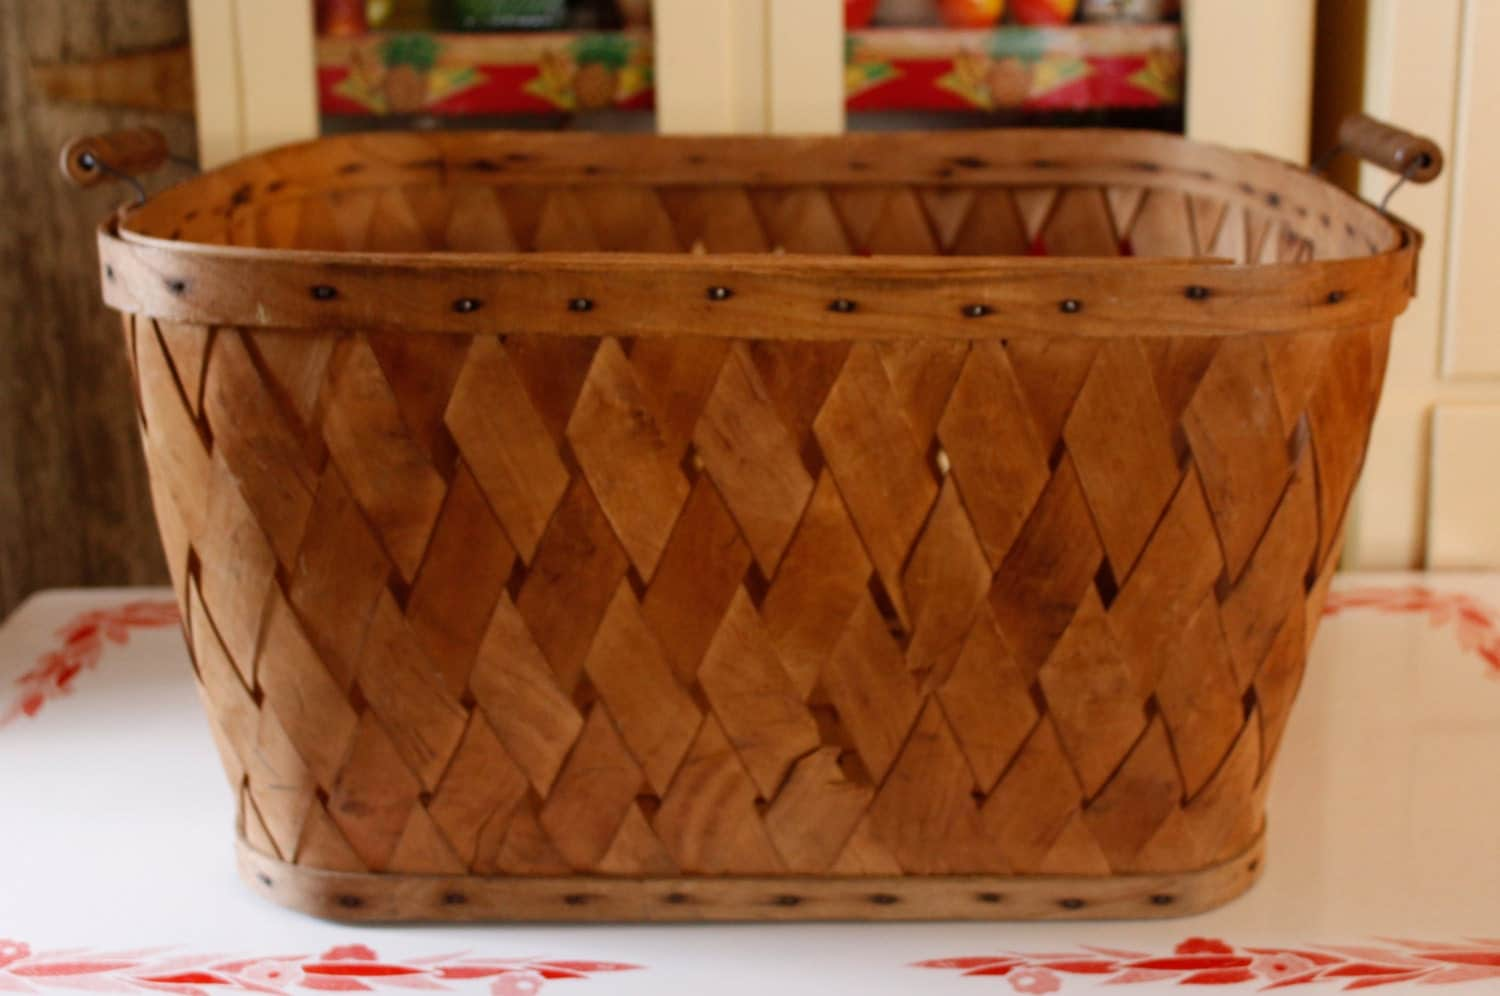 Buy Laundry Baskets & Laundry Bags Online at Best Price. What is the first step to clean clothes? Is it filling a huge tub of soapy water or segregating the colored clothes from the white ones?